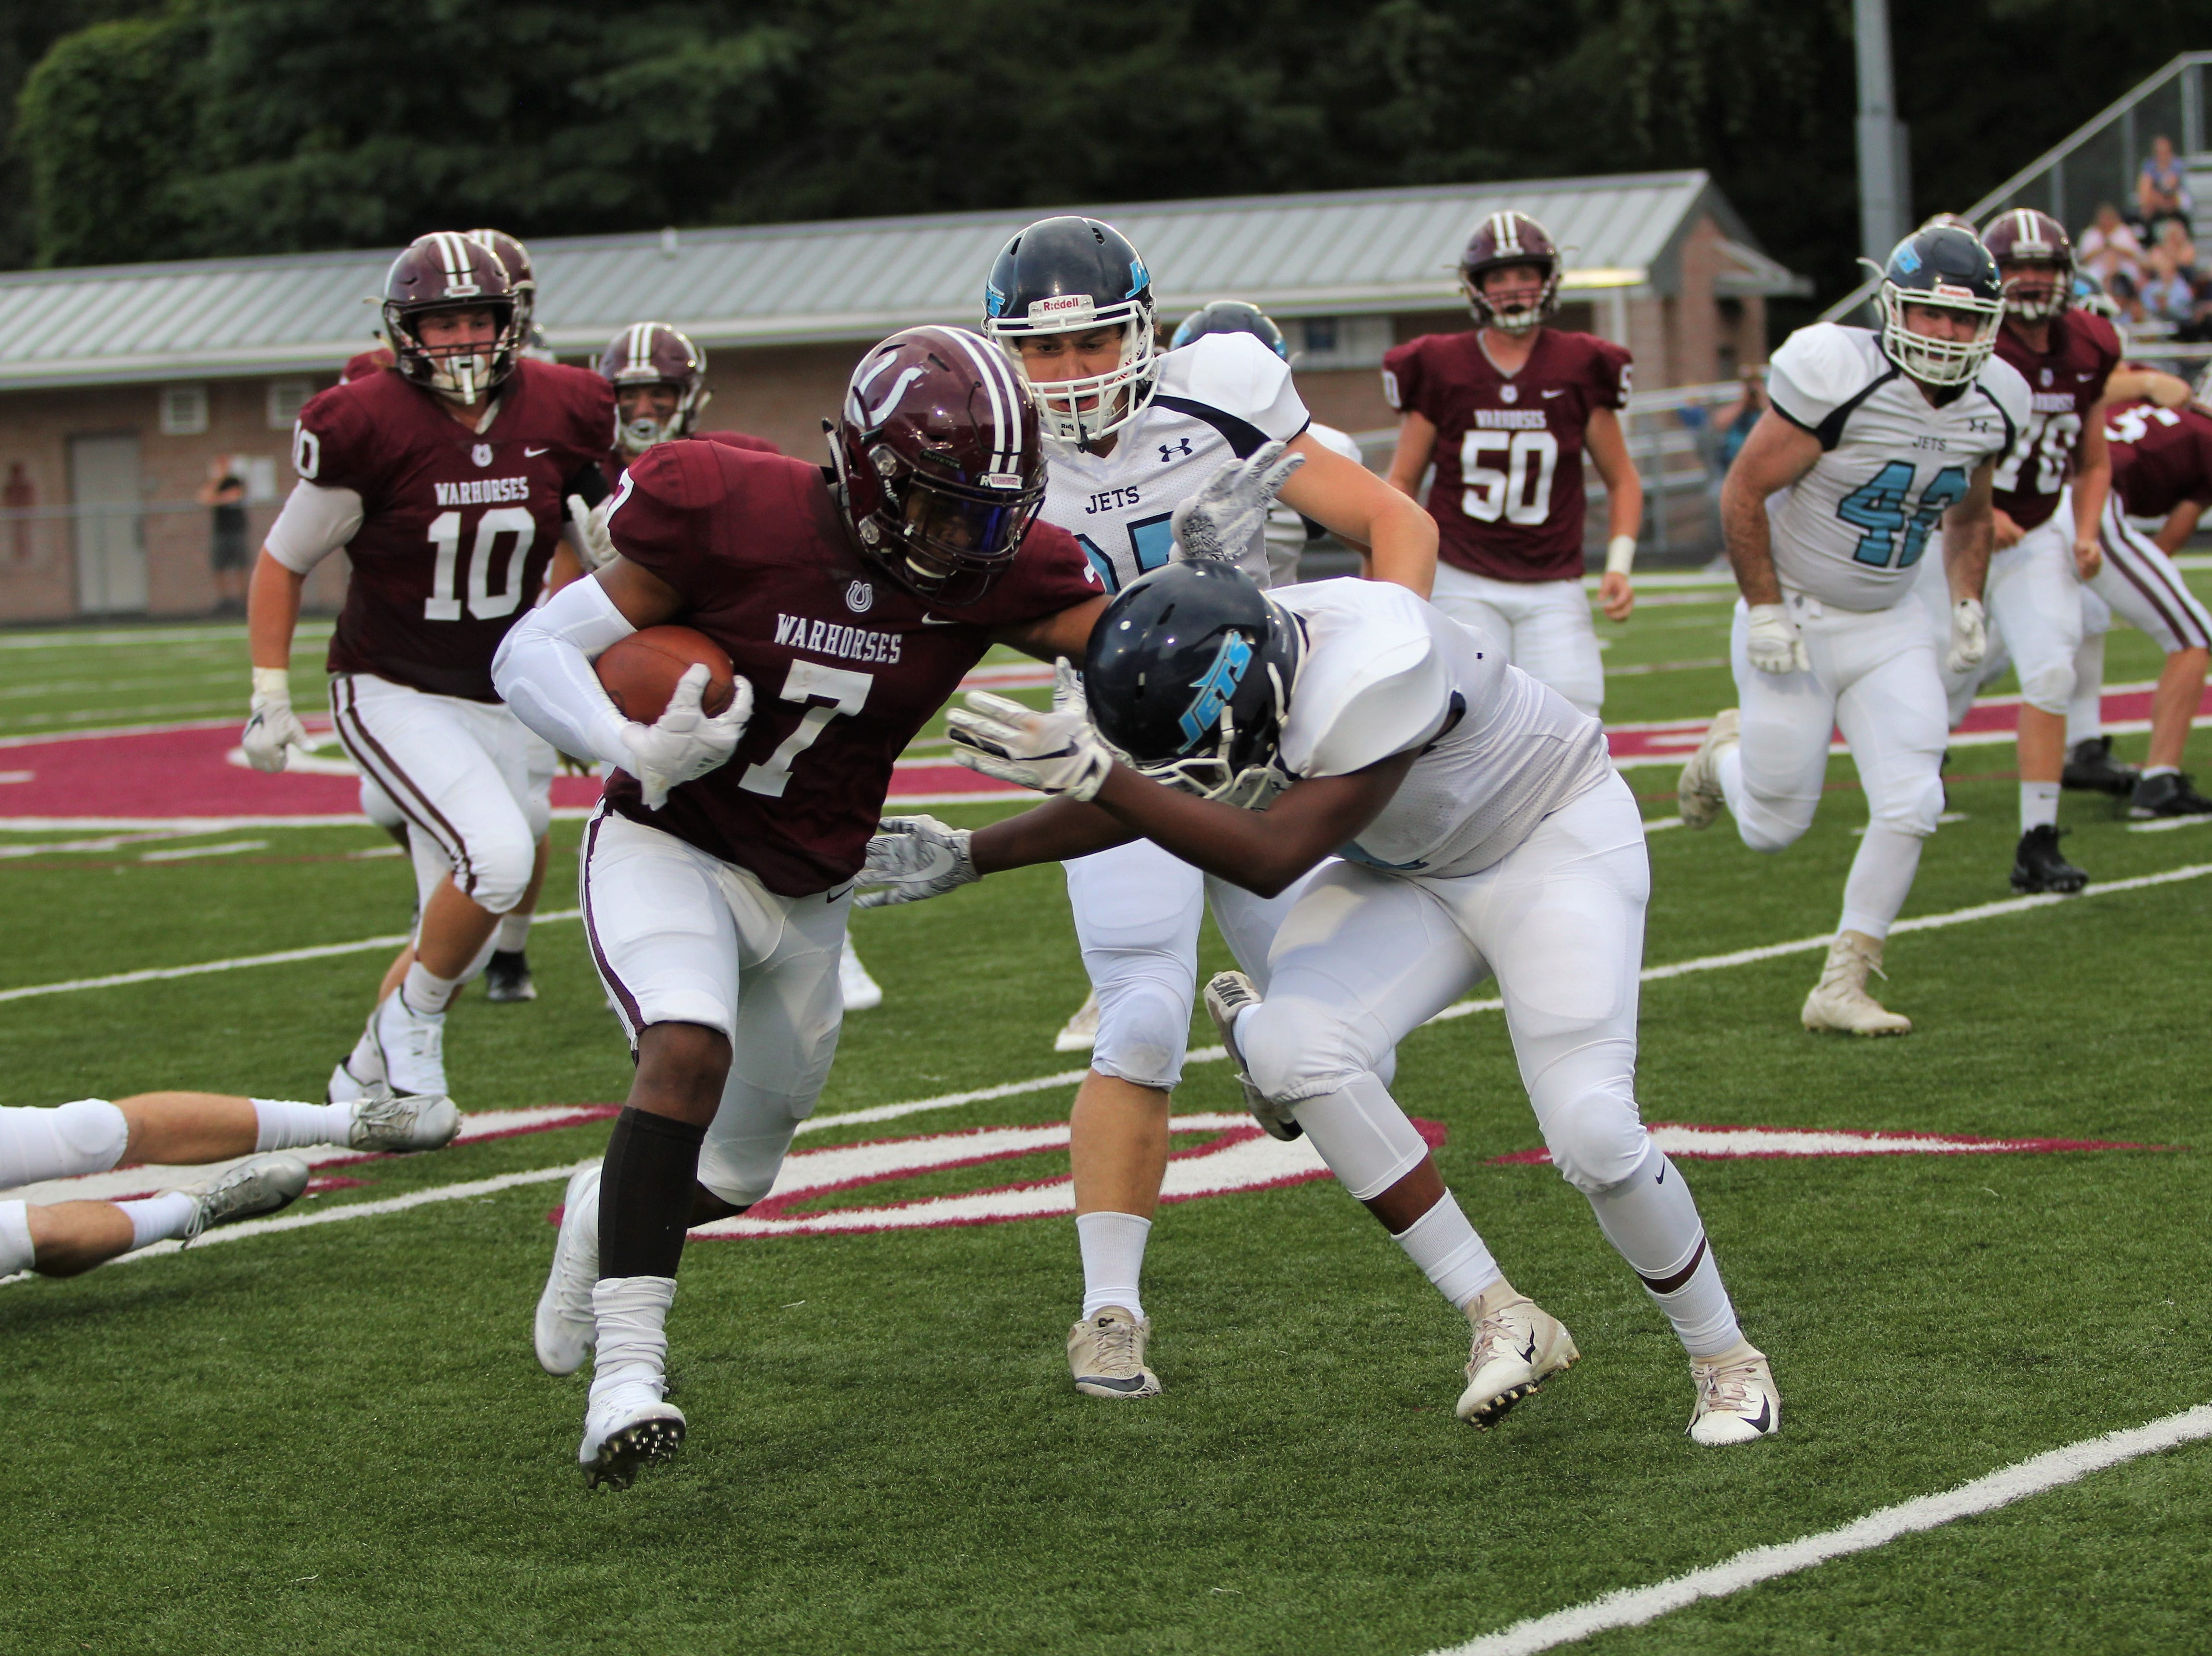 The Owen Warhorses opened the 2018 season with a 34-7 win over the Enka Jets at home on Aug. 17. The Warhorses were led on the field by Landon Cooper, who they visited at Swannanoa Valley Montessori School in April after he wrote them a letter. Coach Nathan Padgett dedicated the win to Cooper after the game.